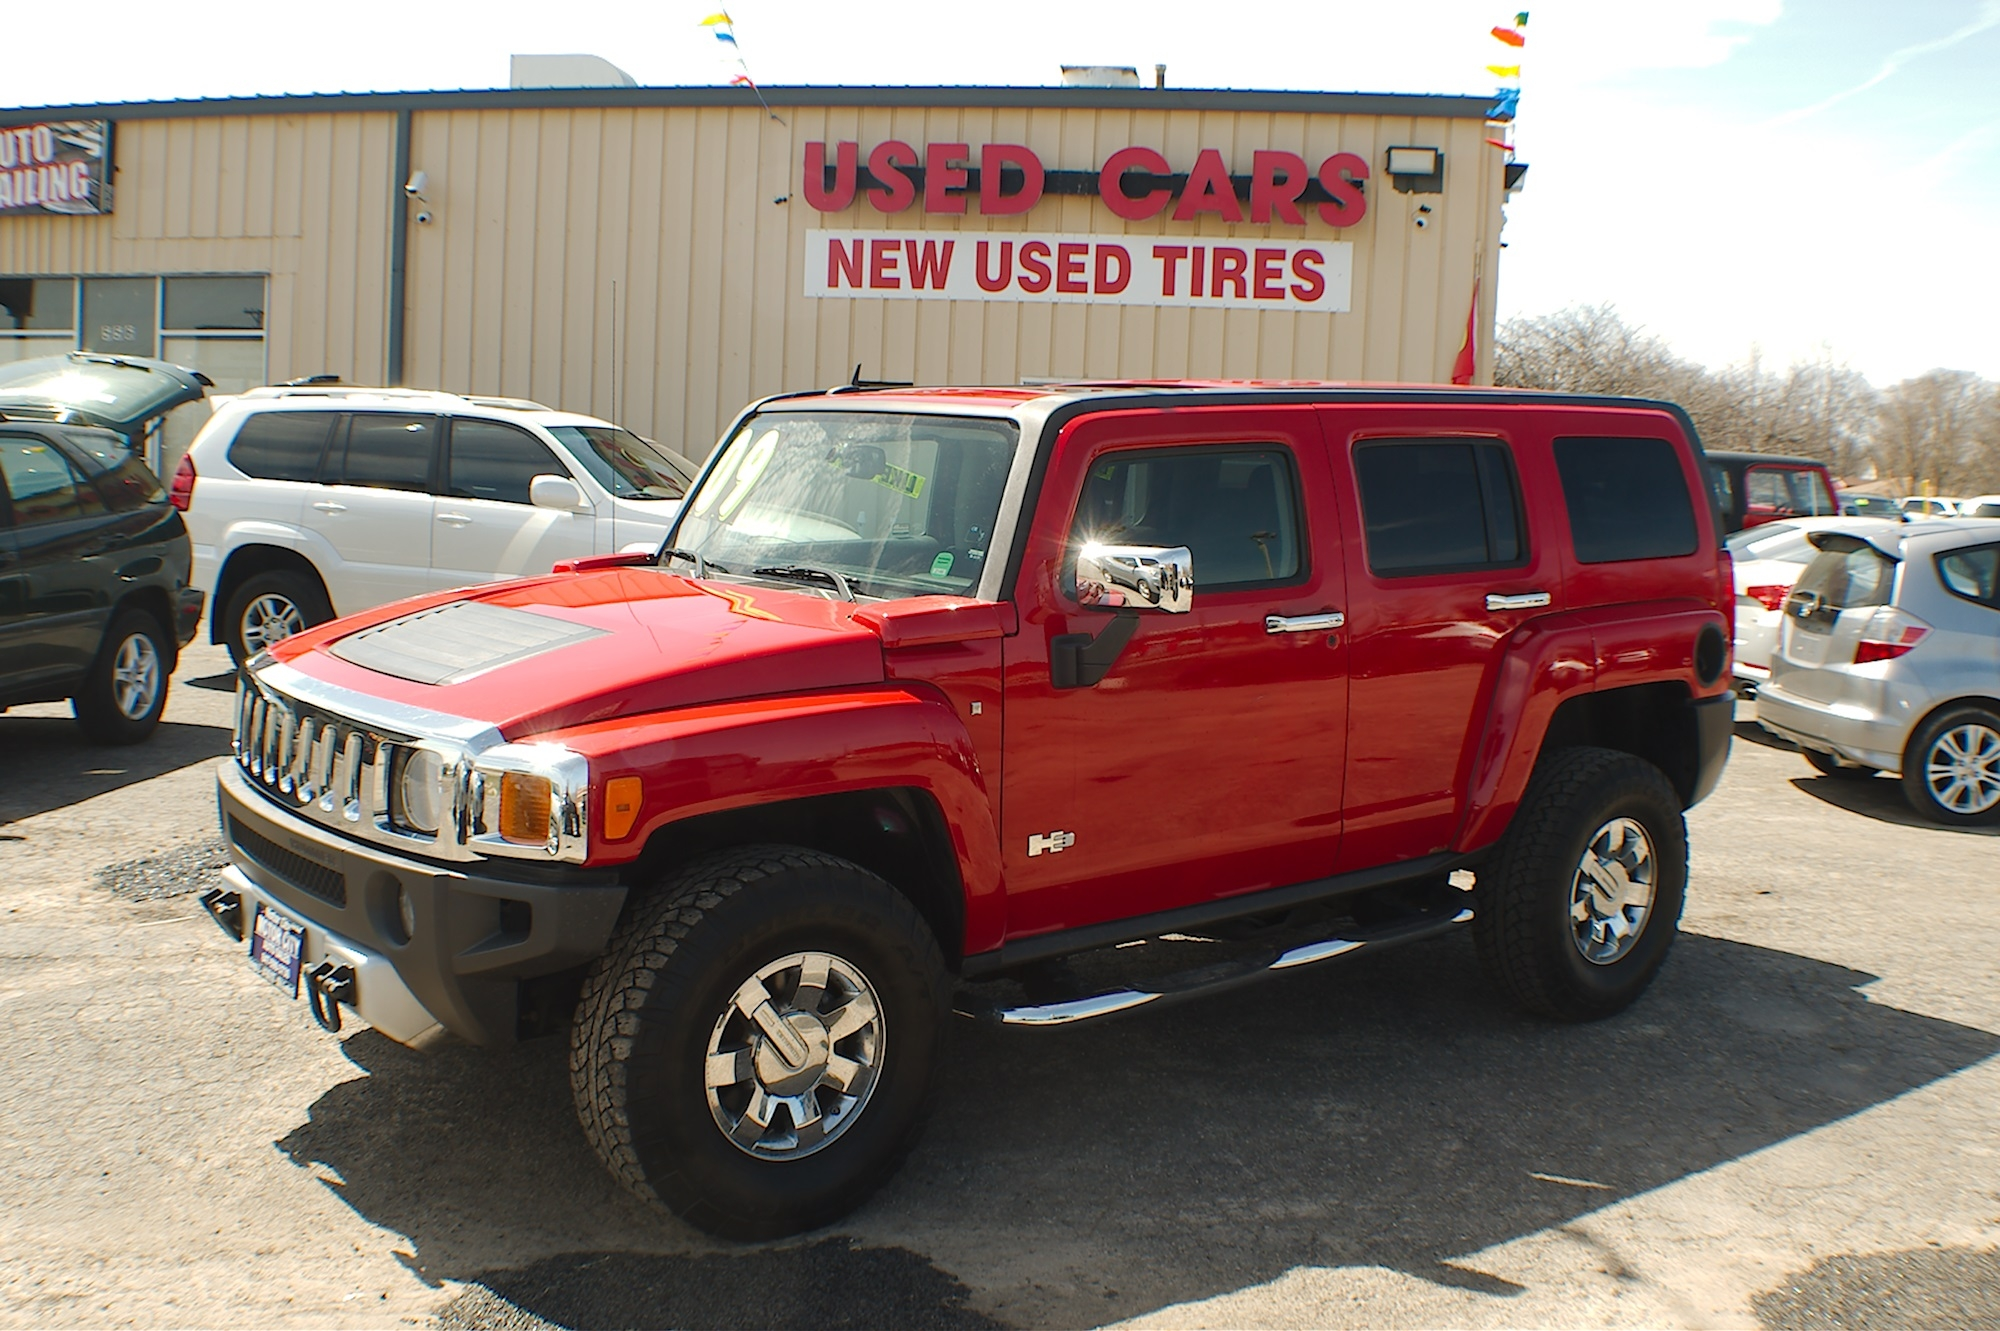 2009 Hummer H3 Red 4x4 Used SUV sale Antioch Zion Waukegan Lake County Illinois